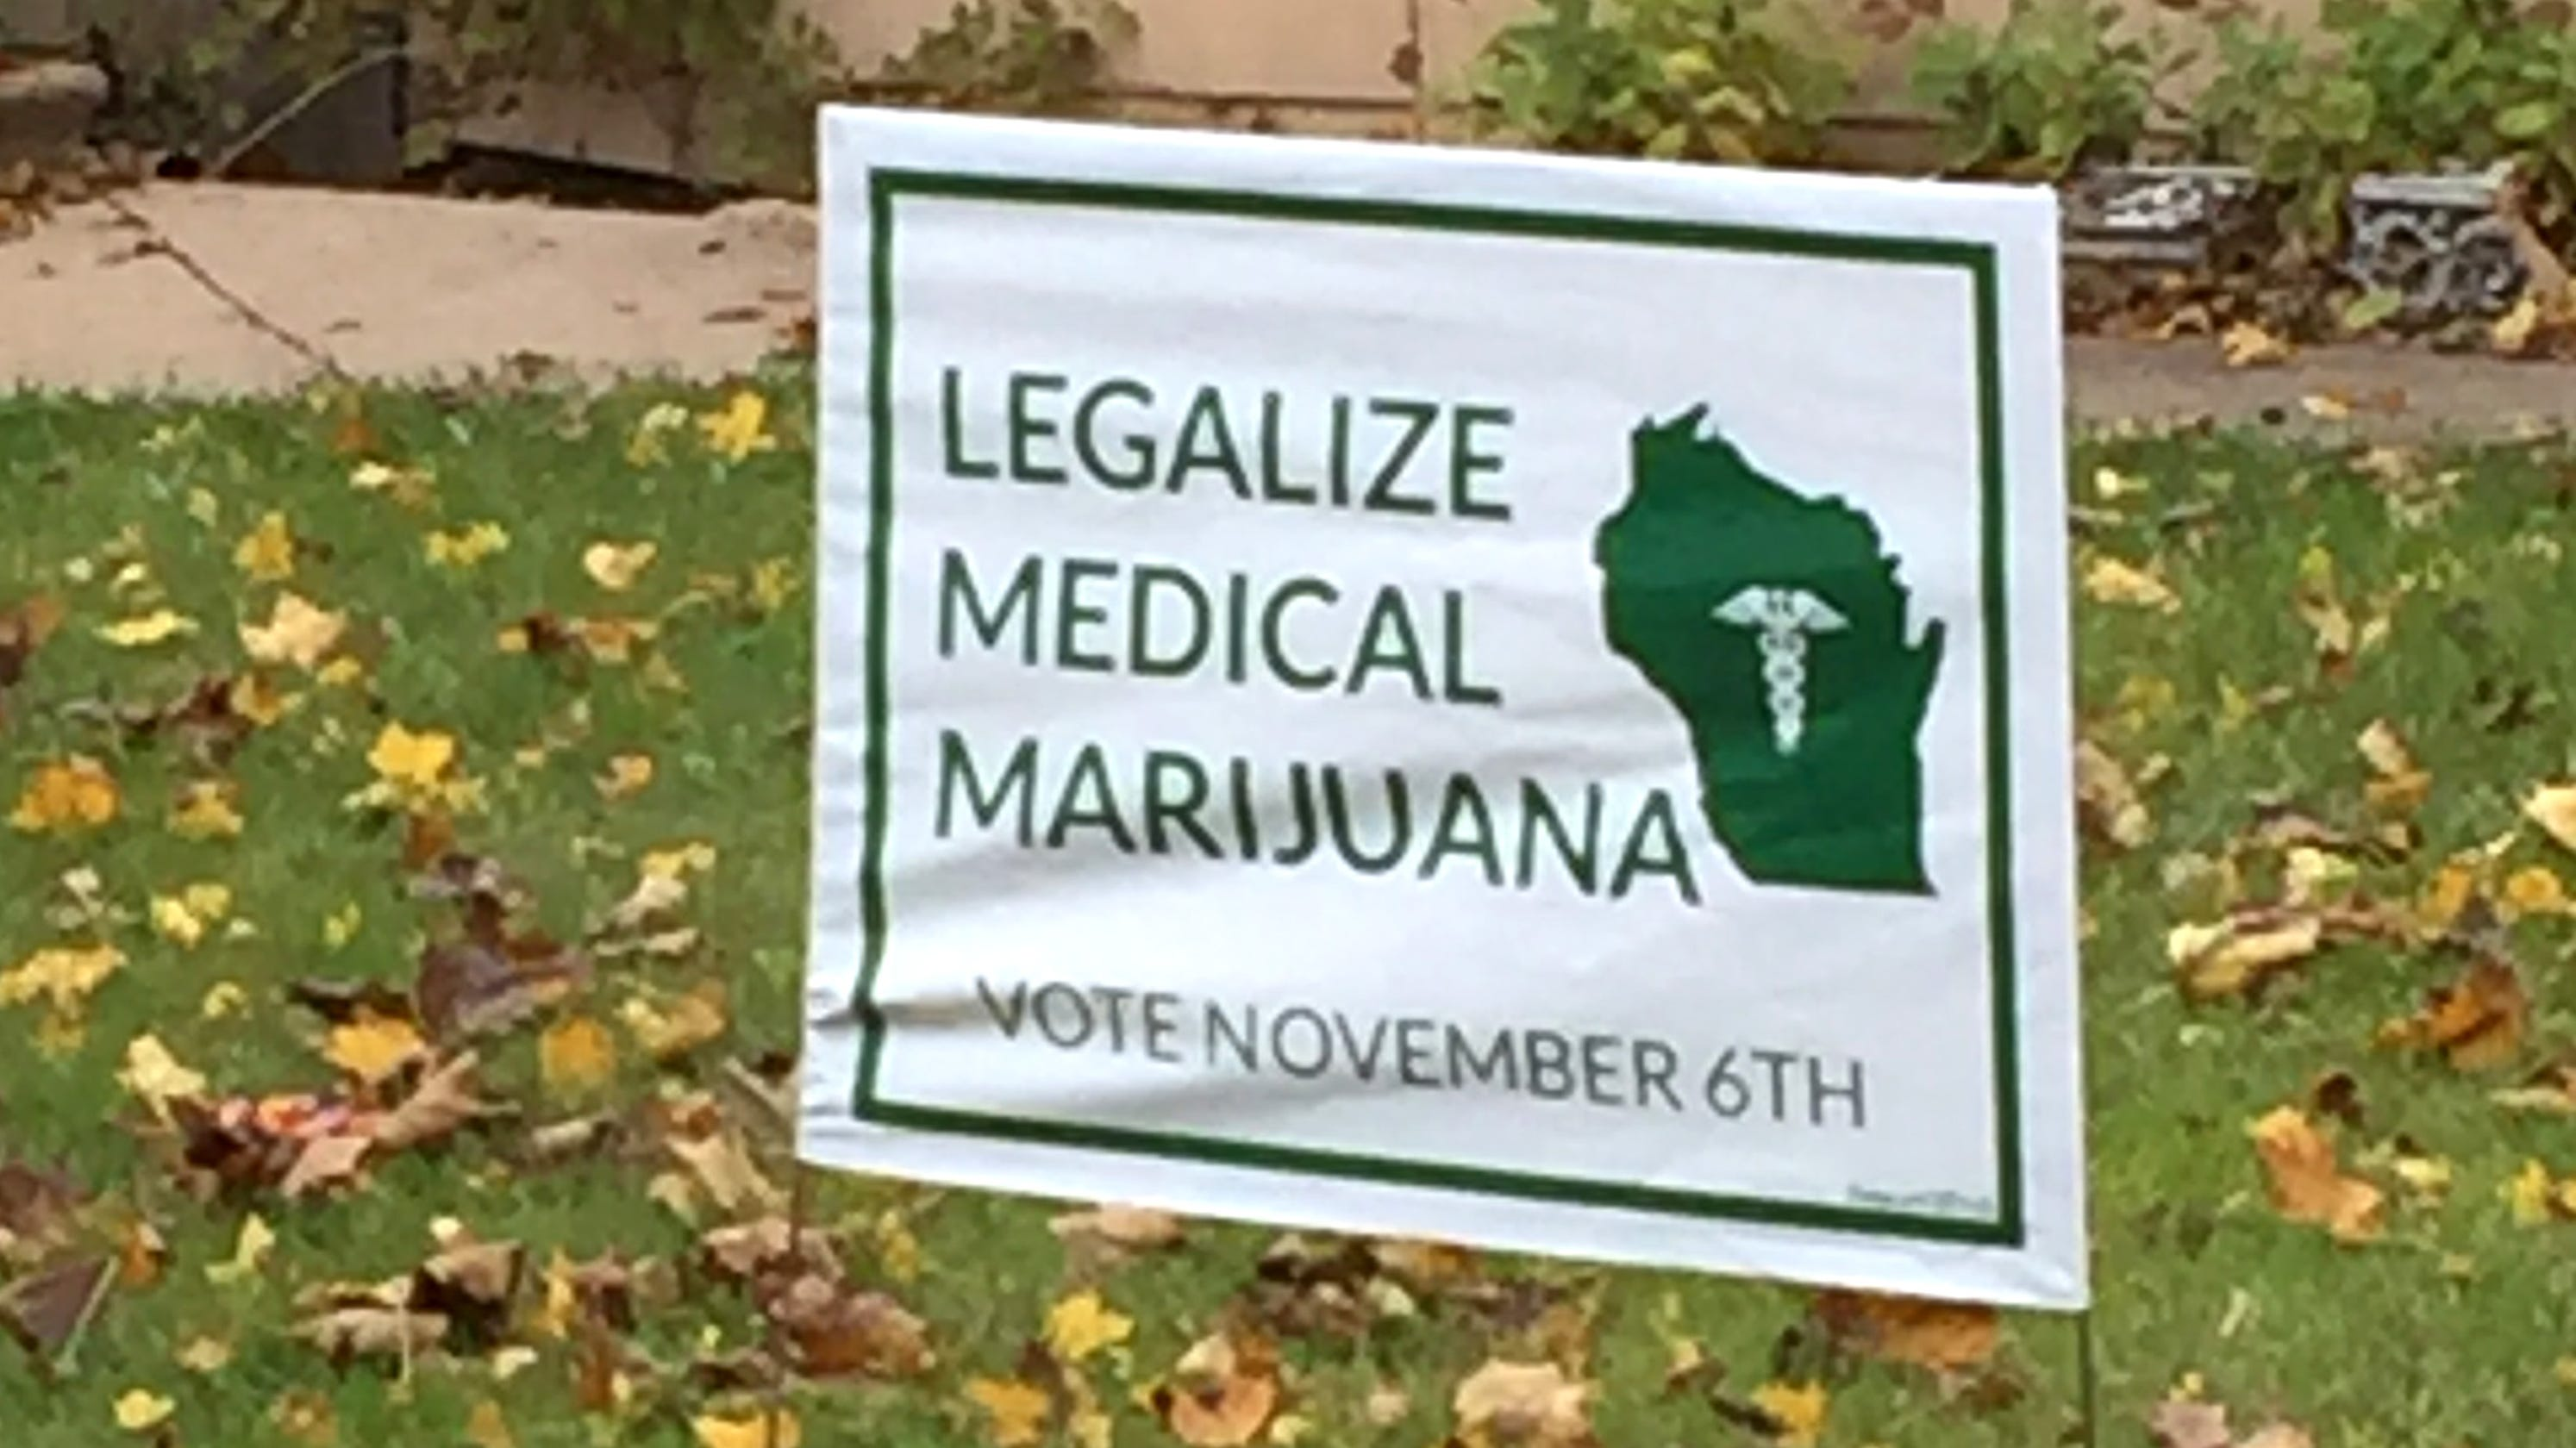 why should marijuana be legalized for medical purposes